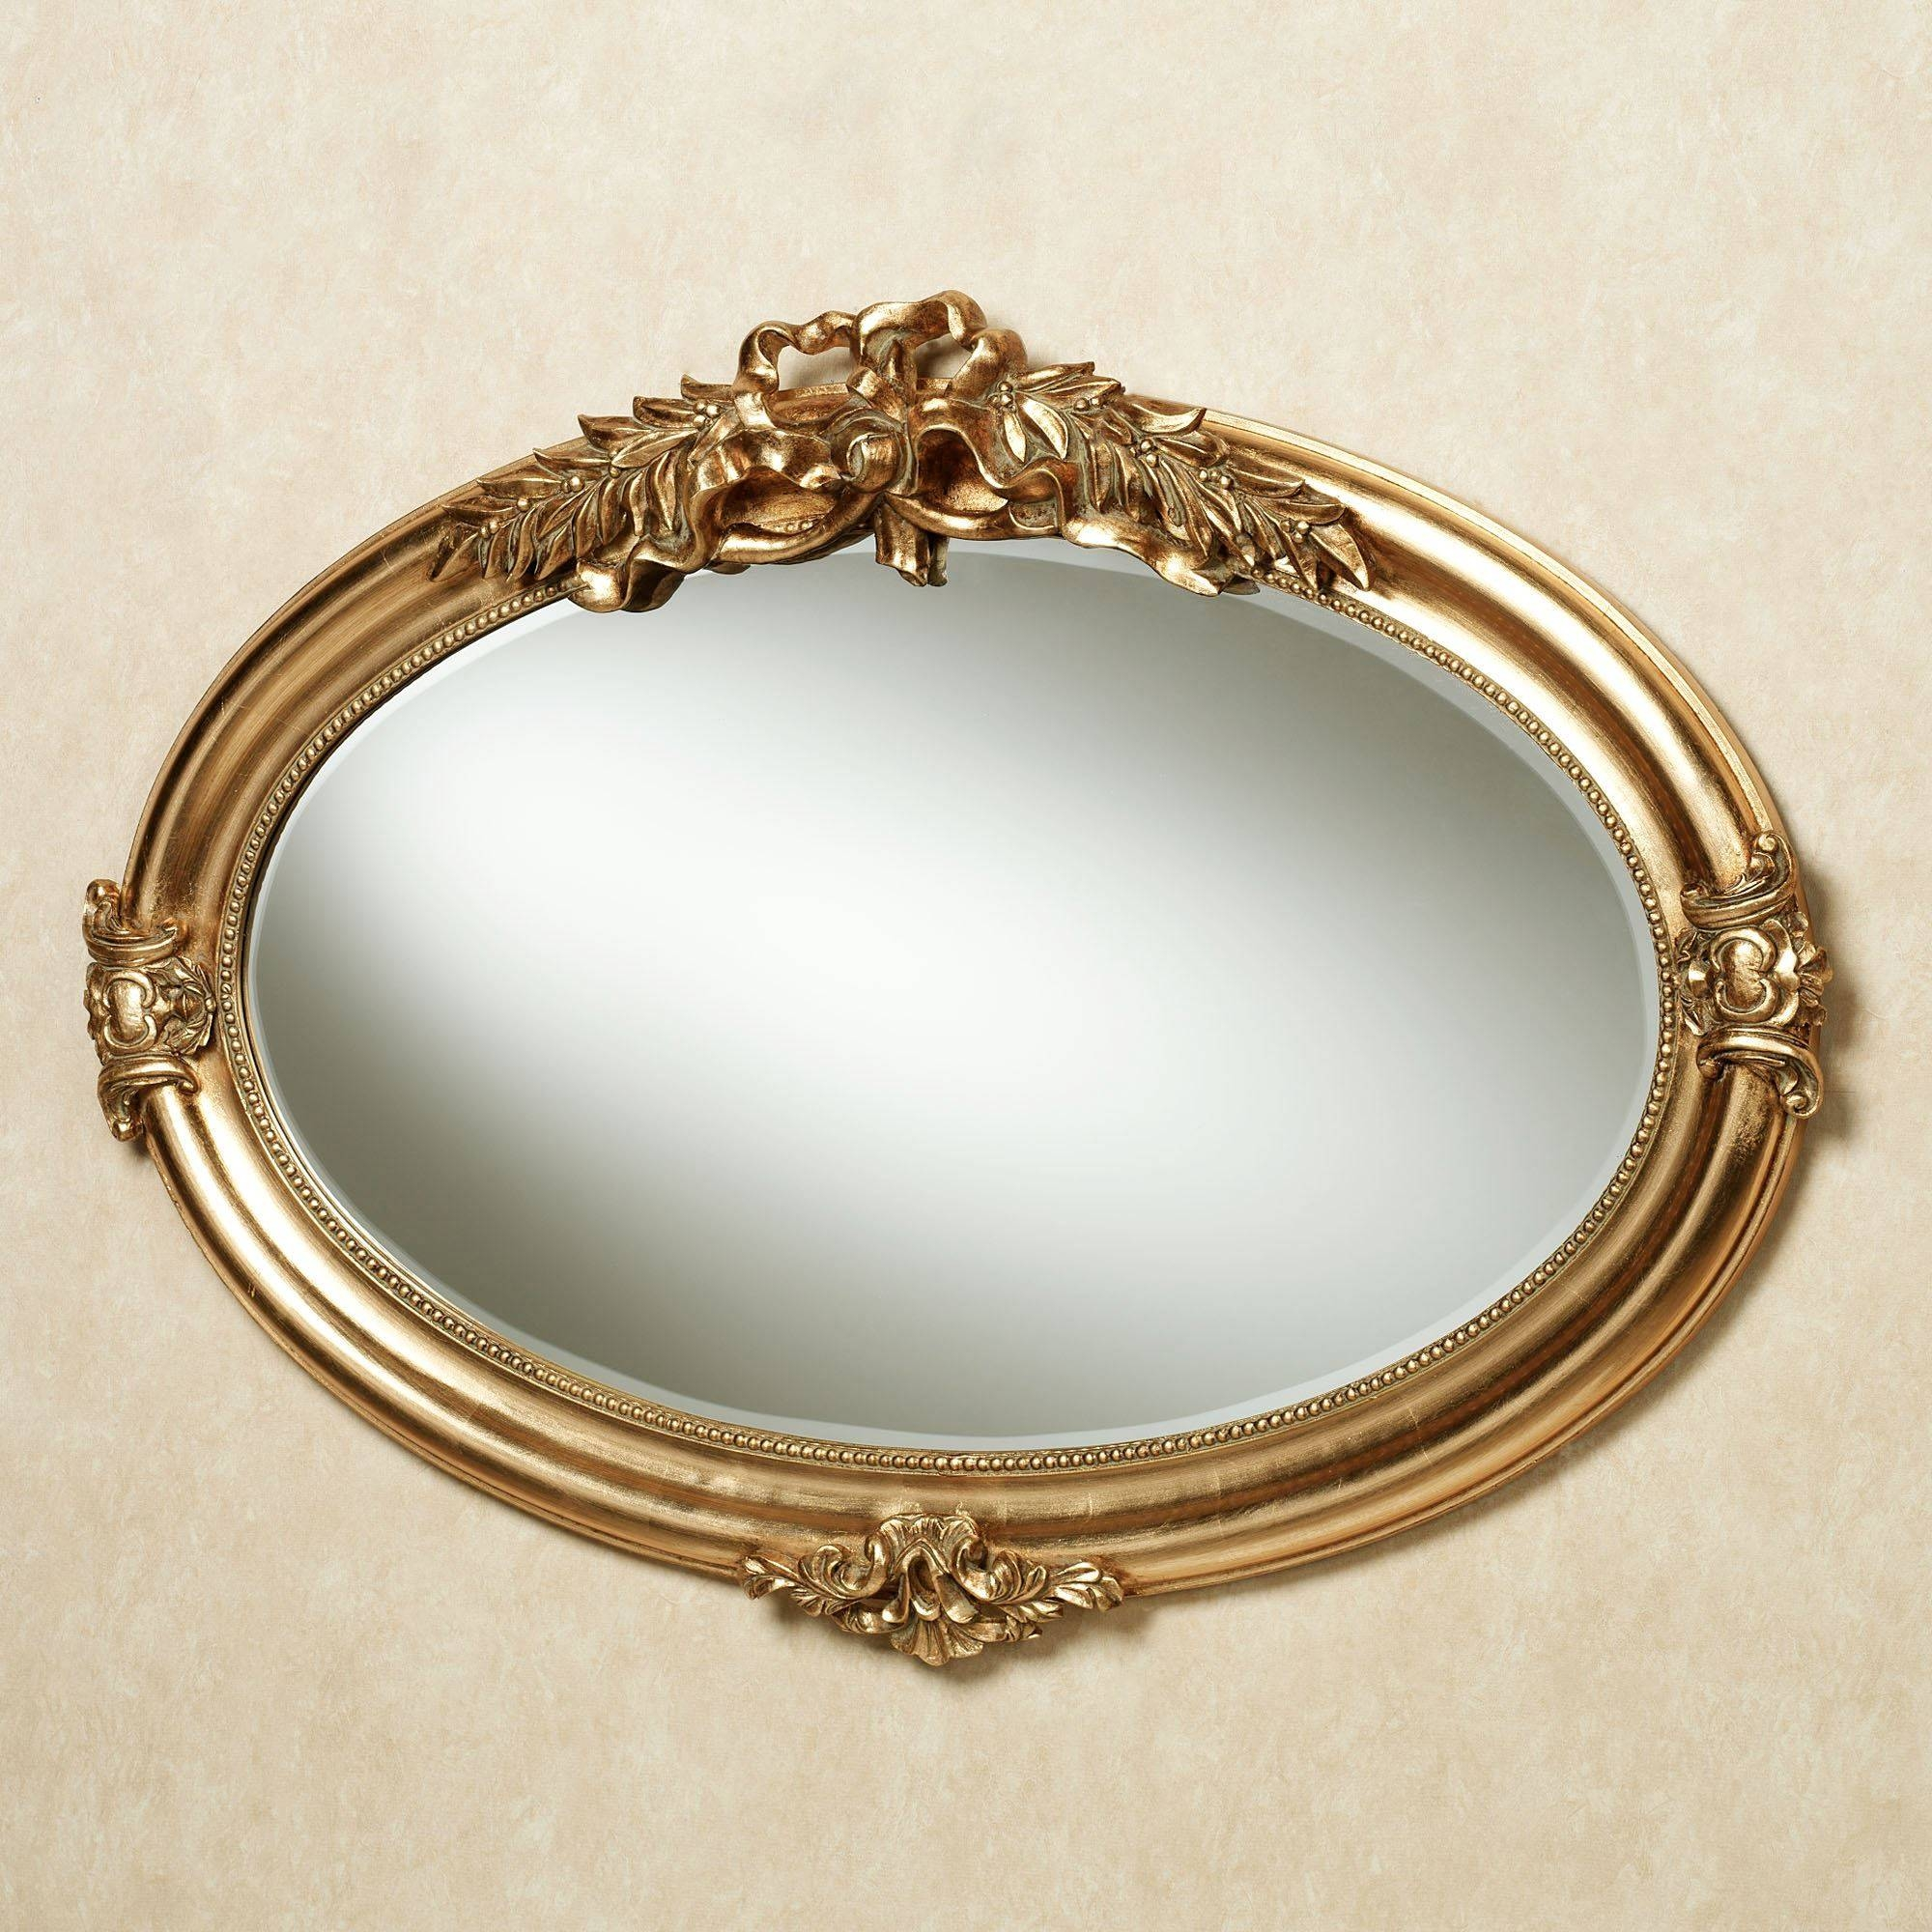 Marsciano Horizontal Oval Wall Mirror with regard to Small Gold Mirrors (Image 15 of 25)